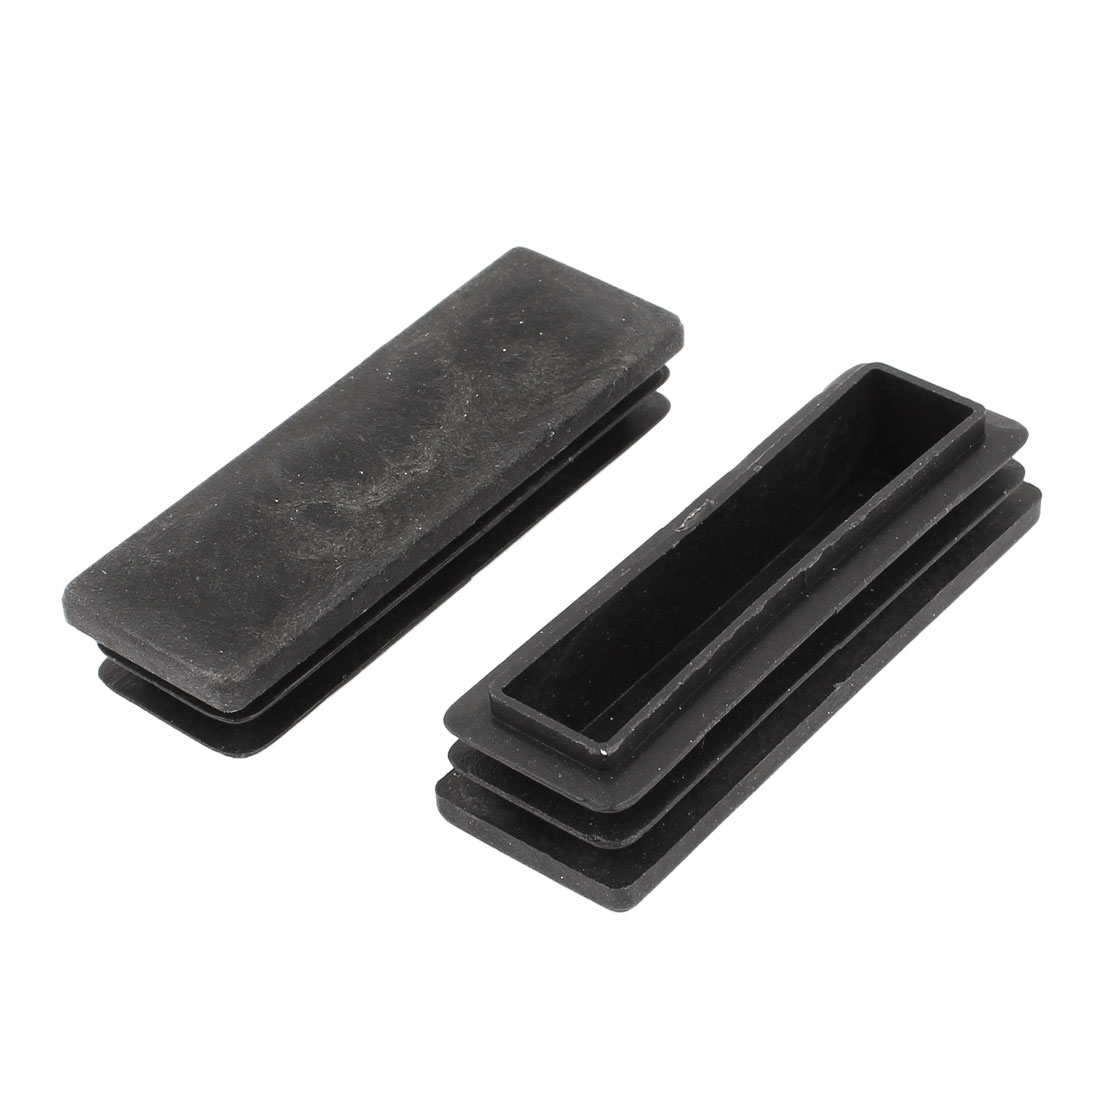 2 Pieces Black Plastic Rectangle Blanking End Caps Tubing Tube Inserts 250mm x 75mm